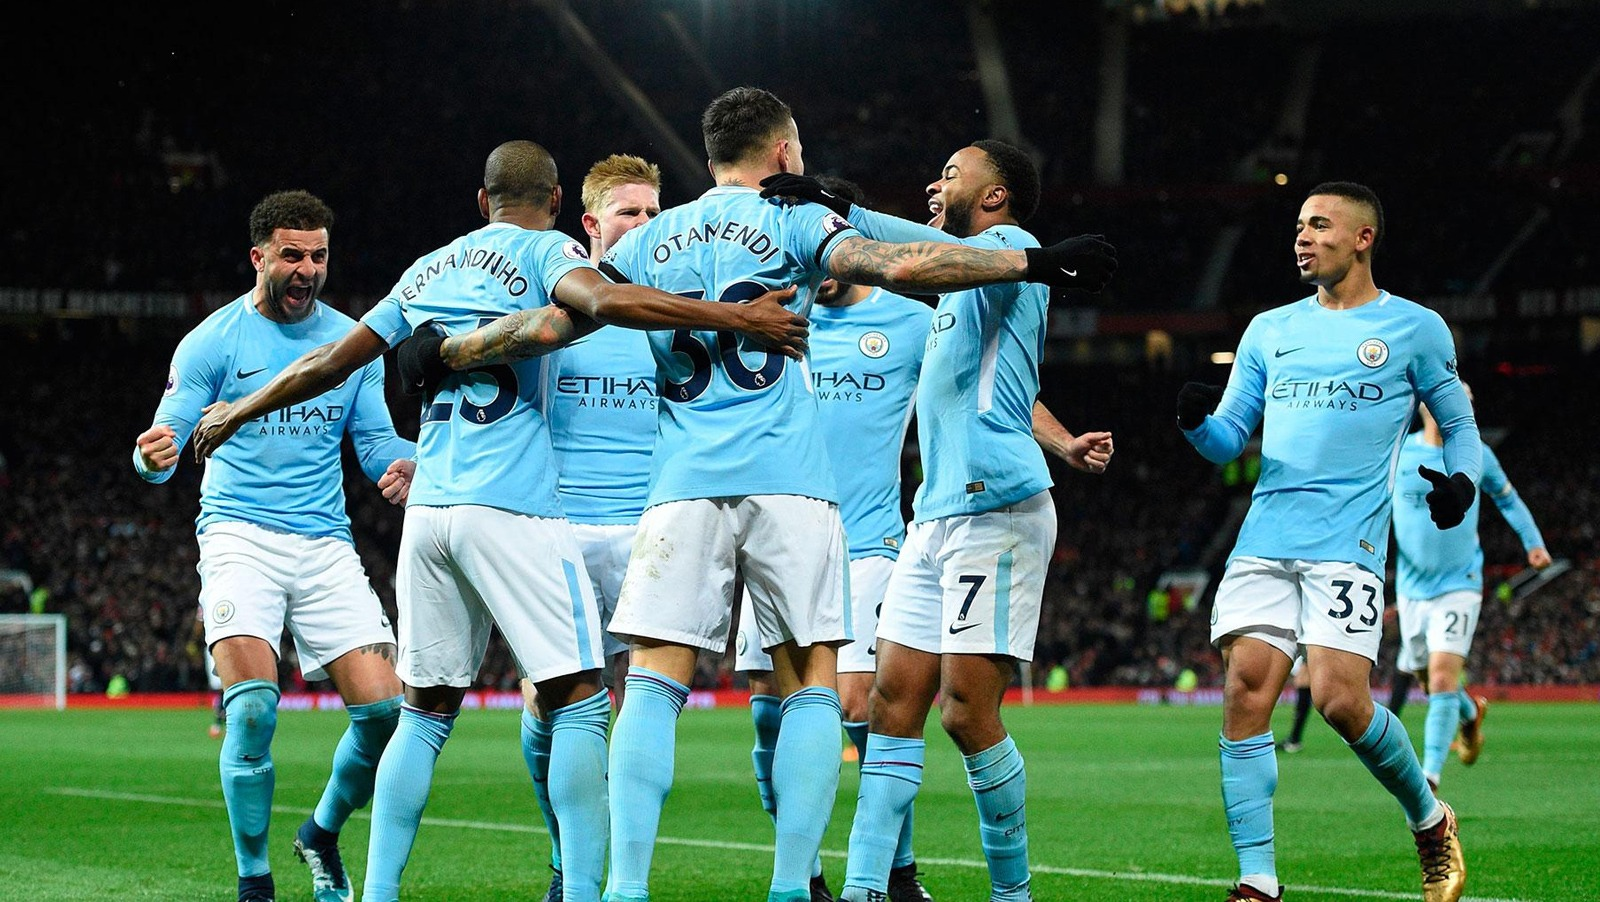 EPL Review Week 16: The title race is over after City beat Utd